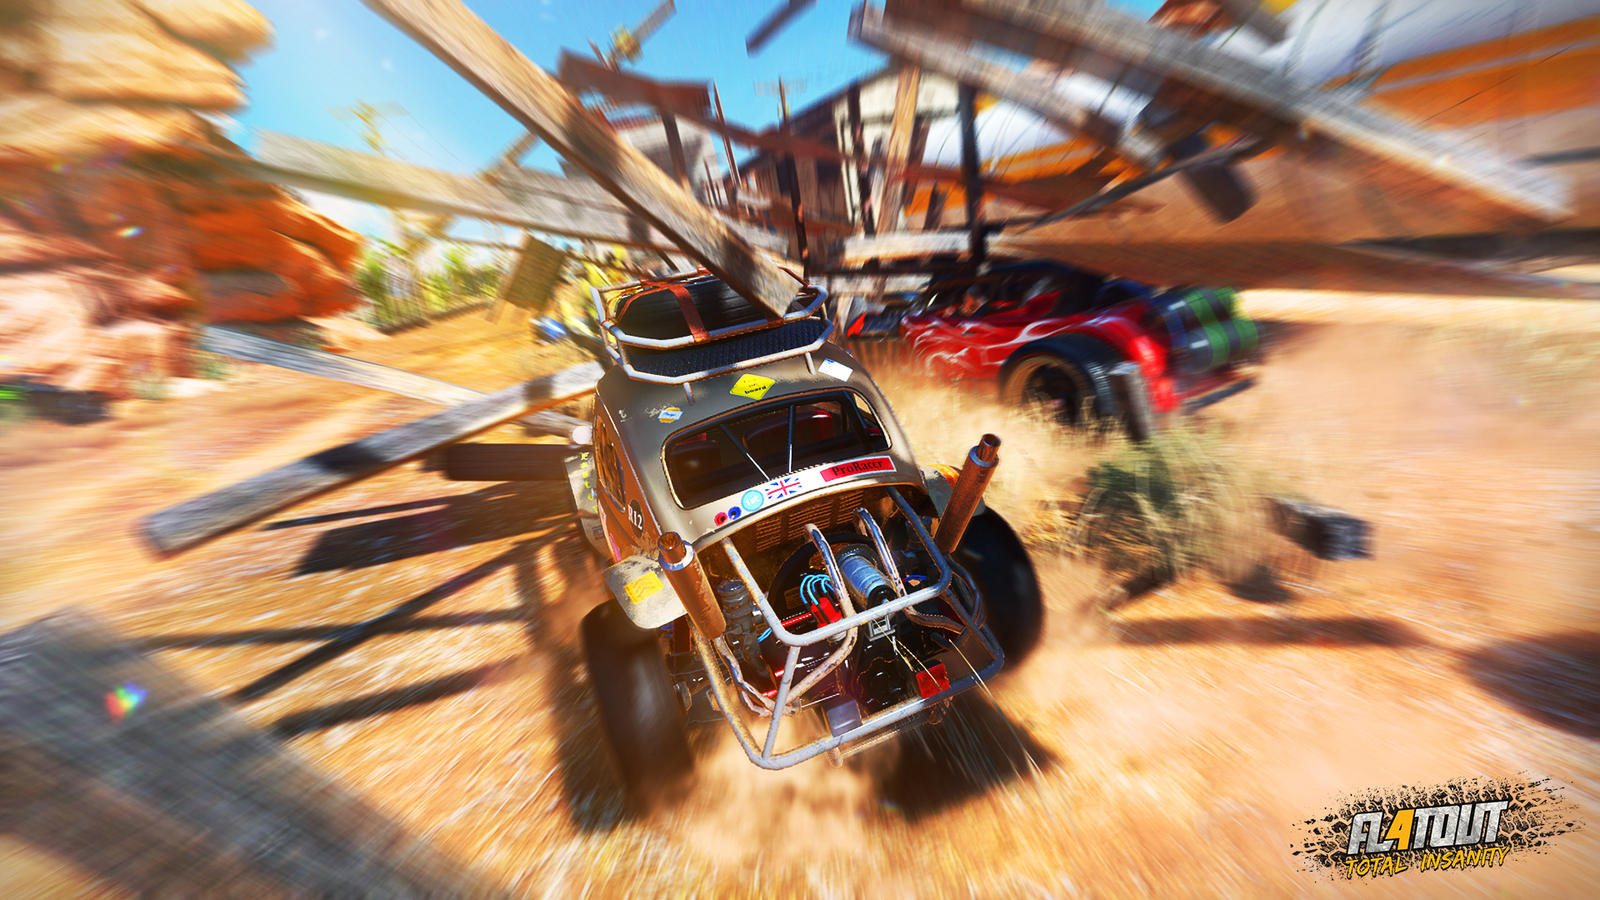 Flatout 4: Total Insanity for Xbox One image